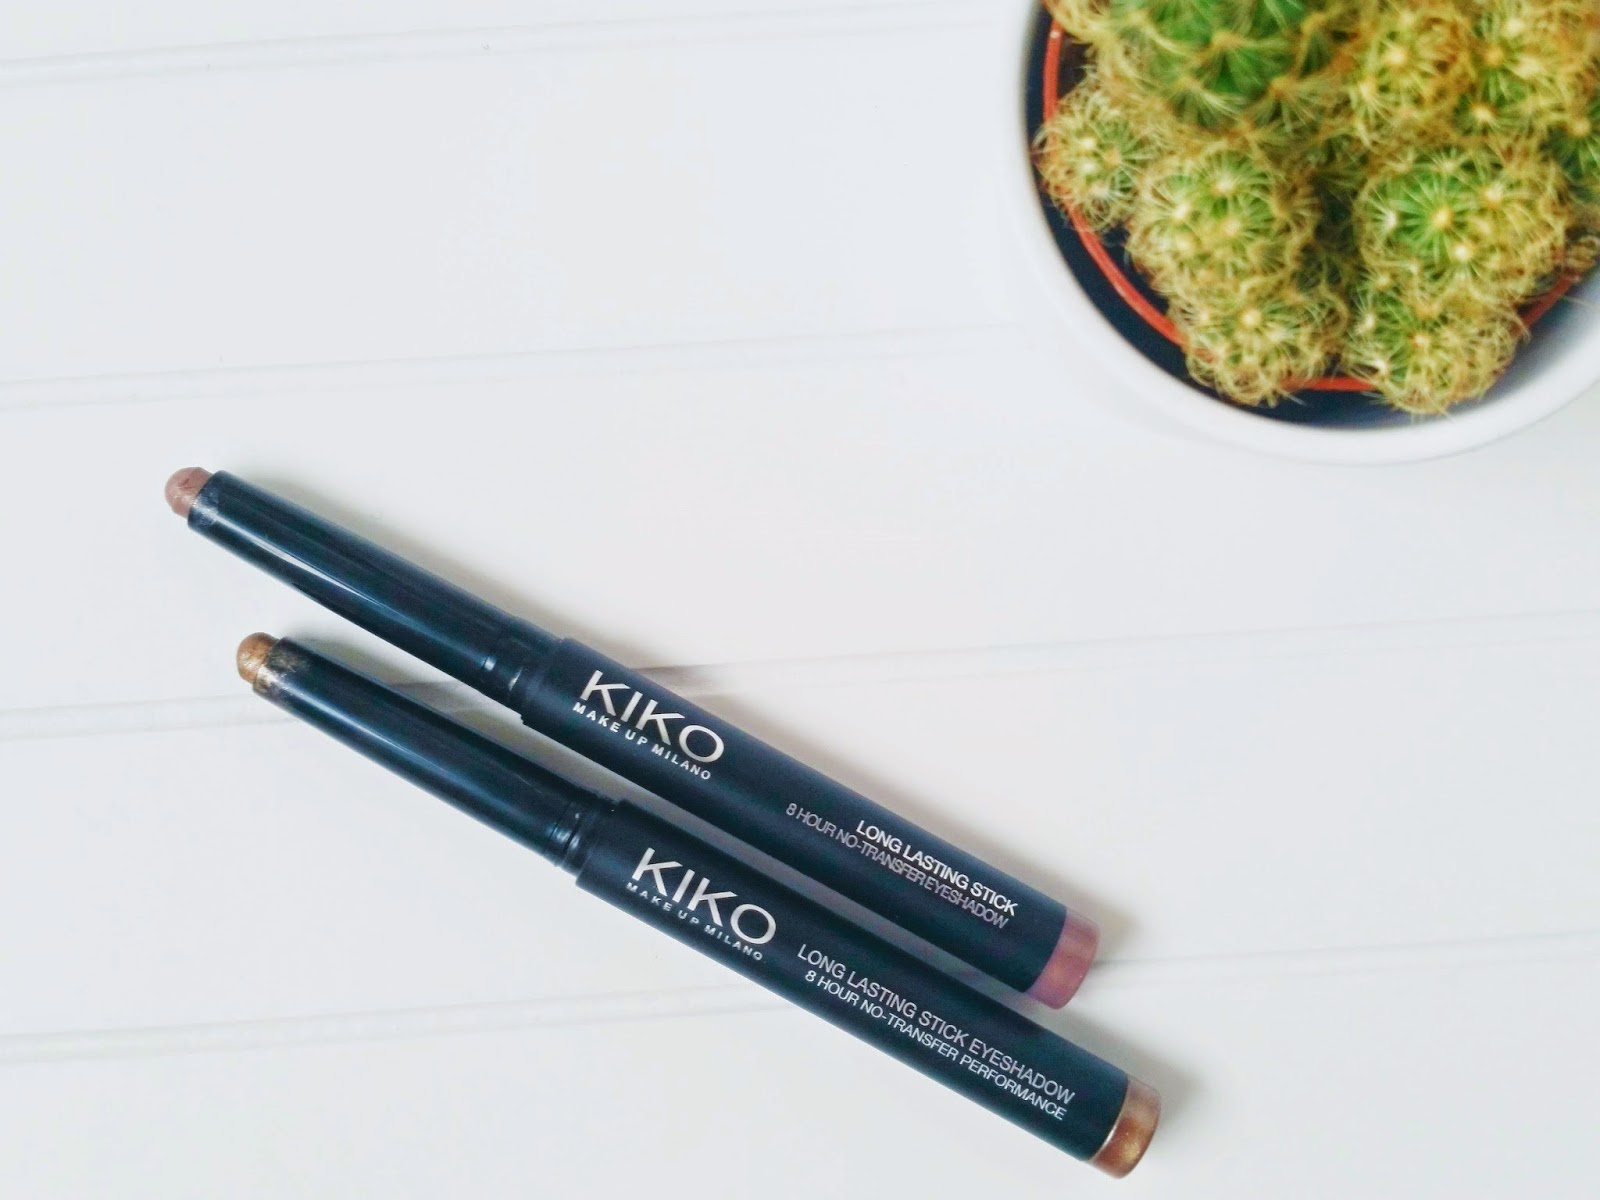 kiko long lasting eyeshadow pencils